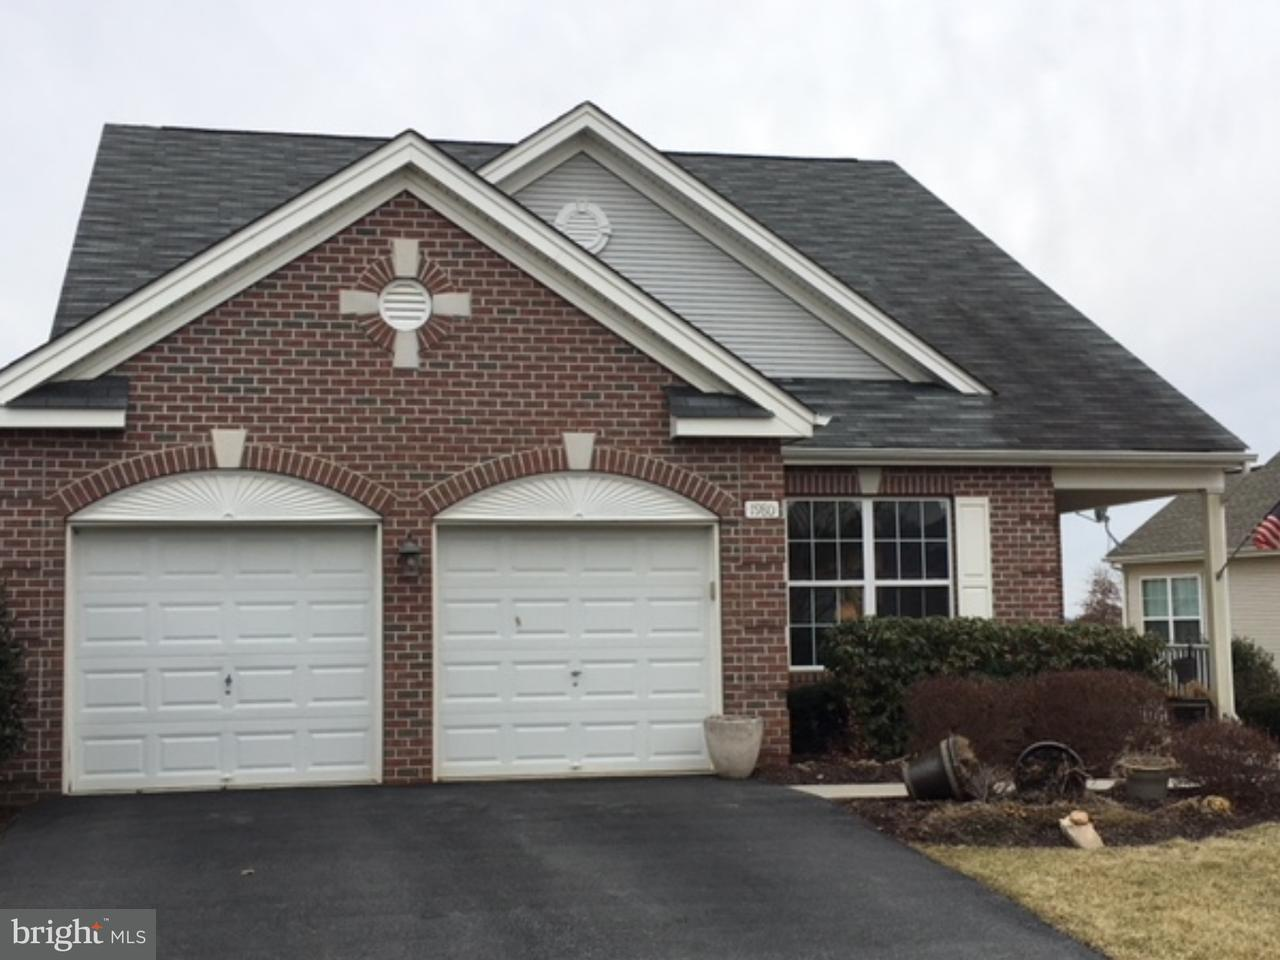 Single Family Home for Sale at 1980 KINGSVIEW Road Macungie, Pennsylvania 18062 United States